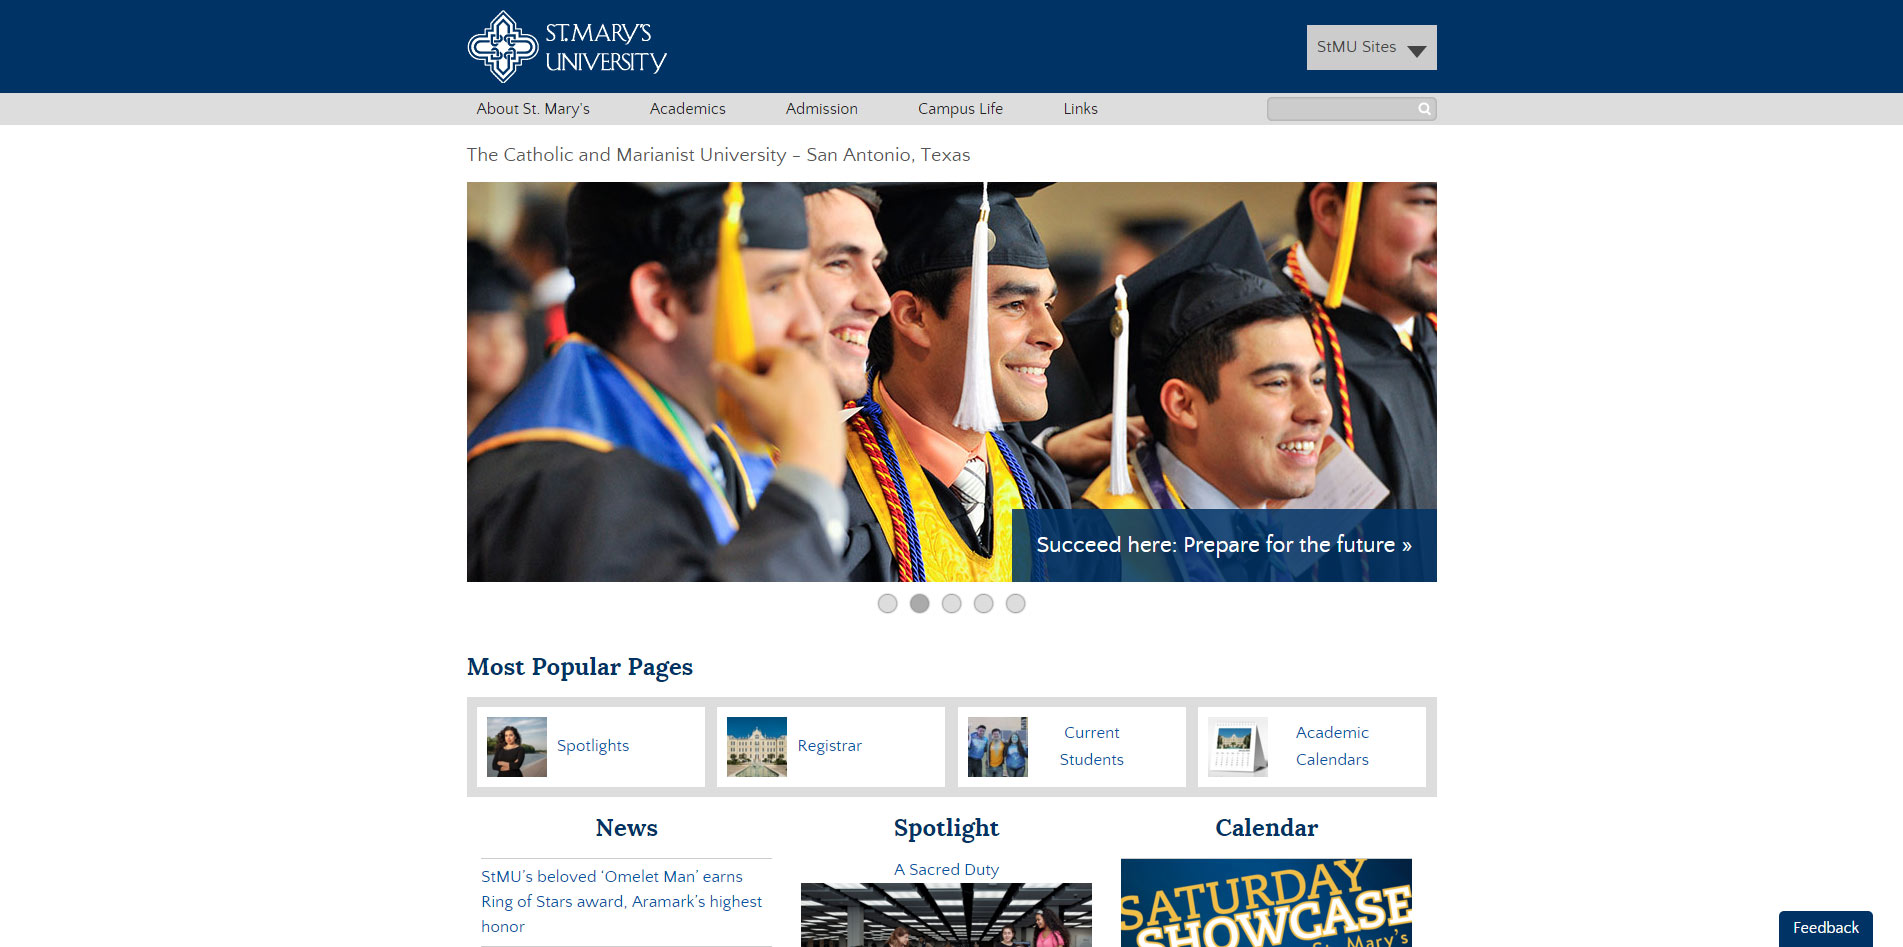 St. Mary's University homepage